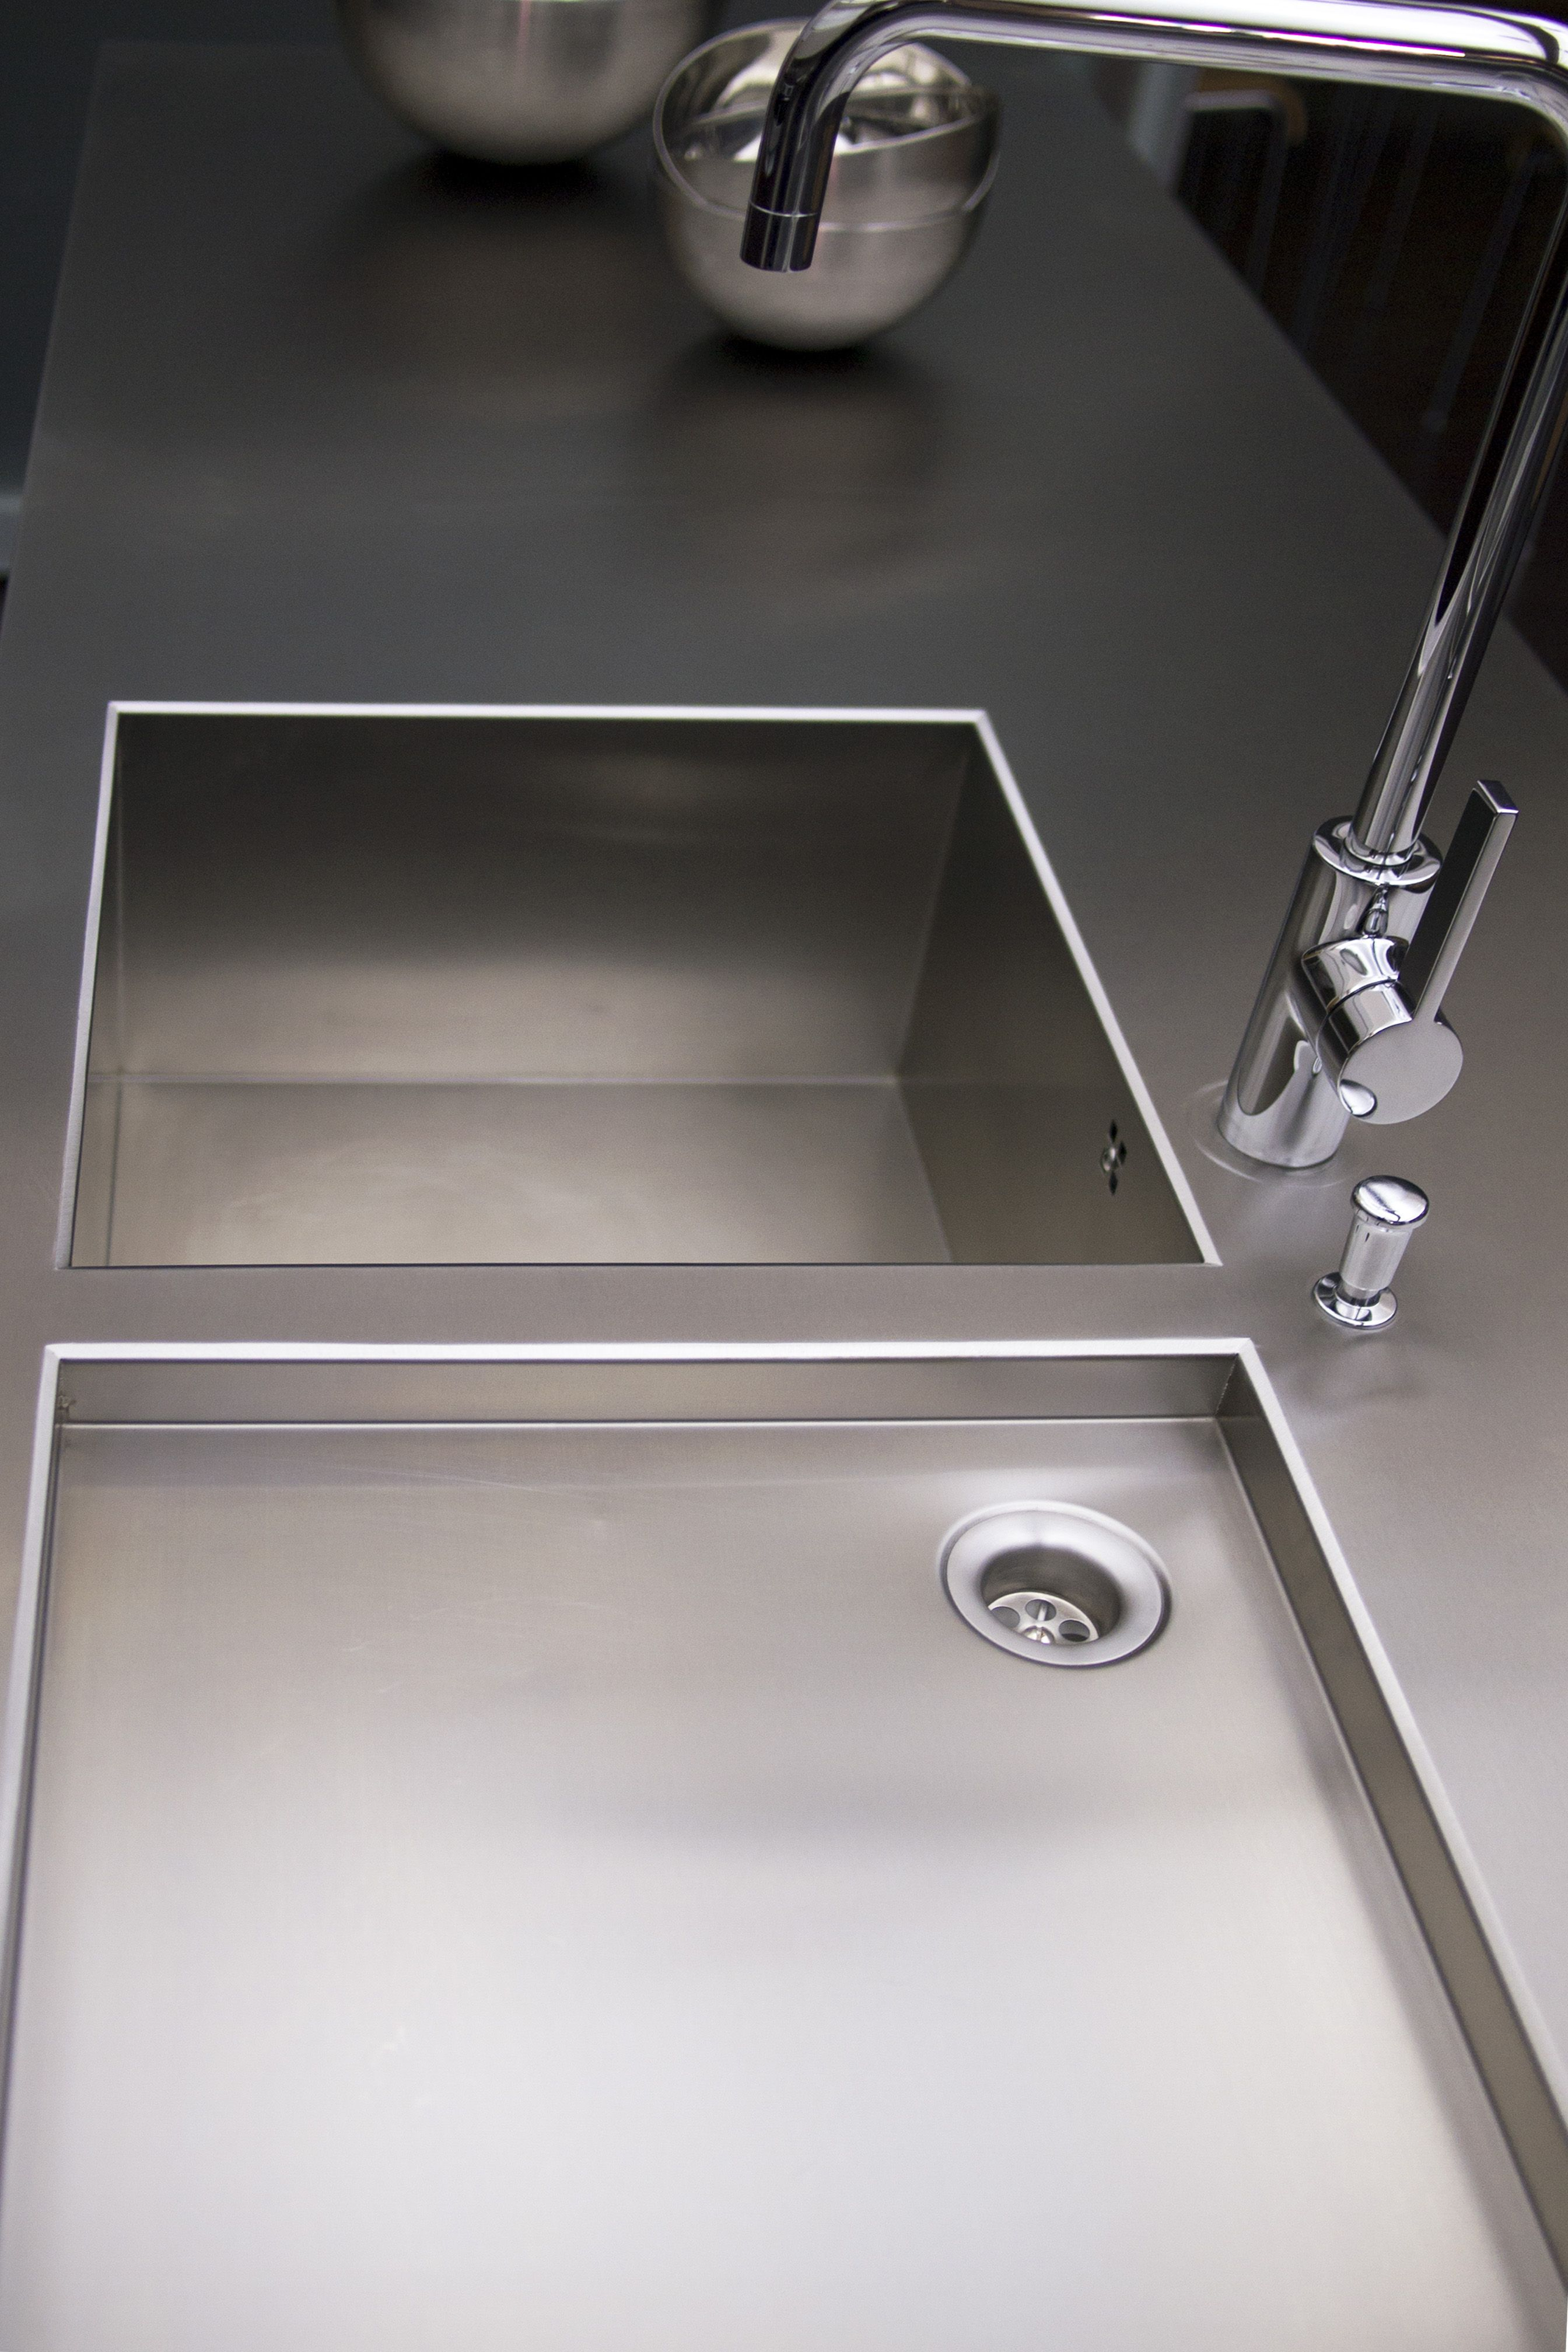 Of storage both behind the worktop amp cooker and below the sinks - Inox Sink And Worktop In One Piece Only